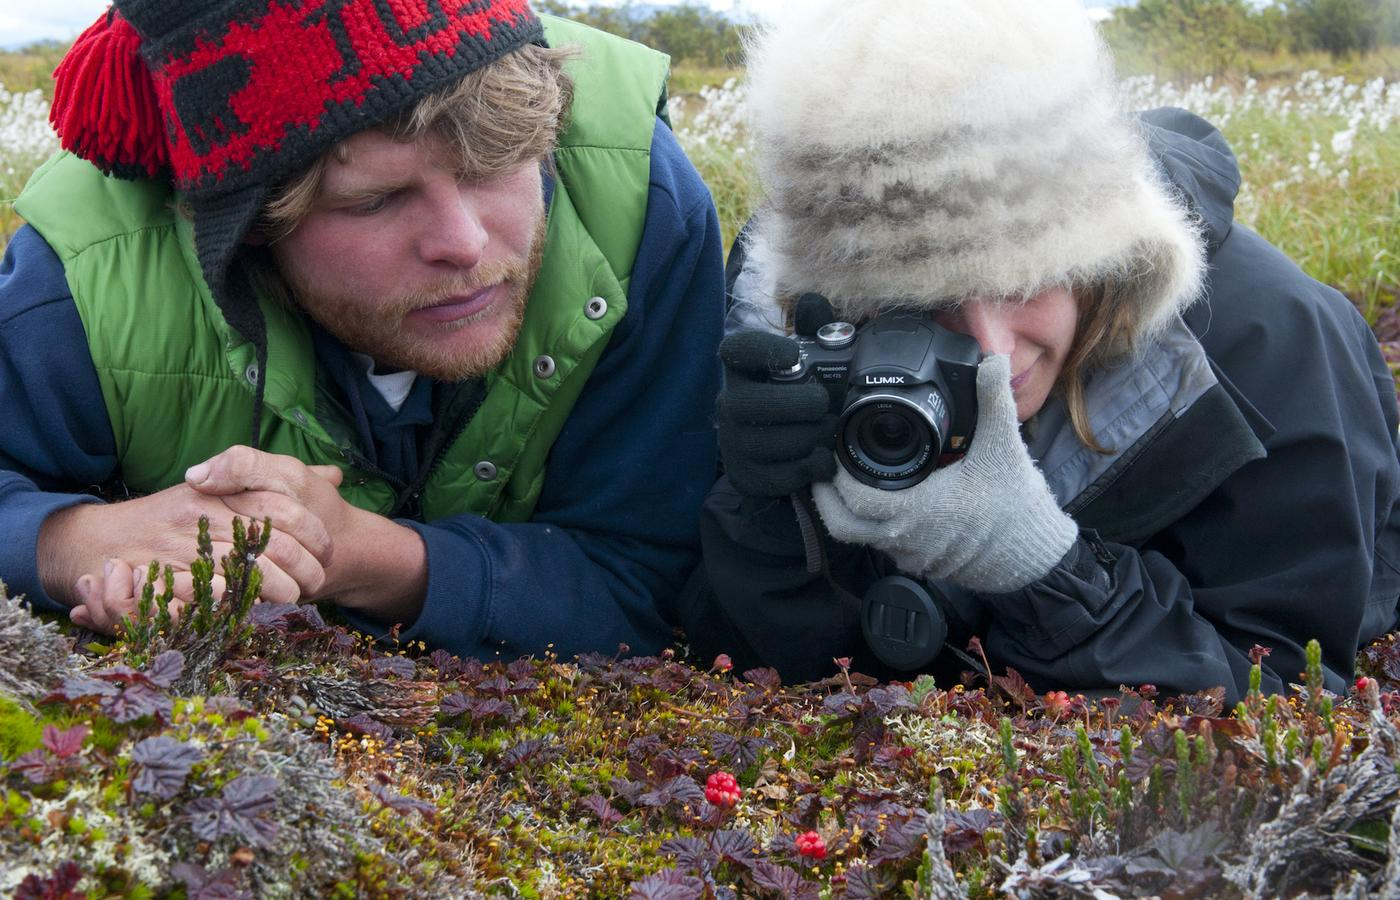 close-up photography in the barrenlands